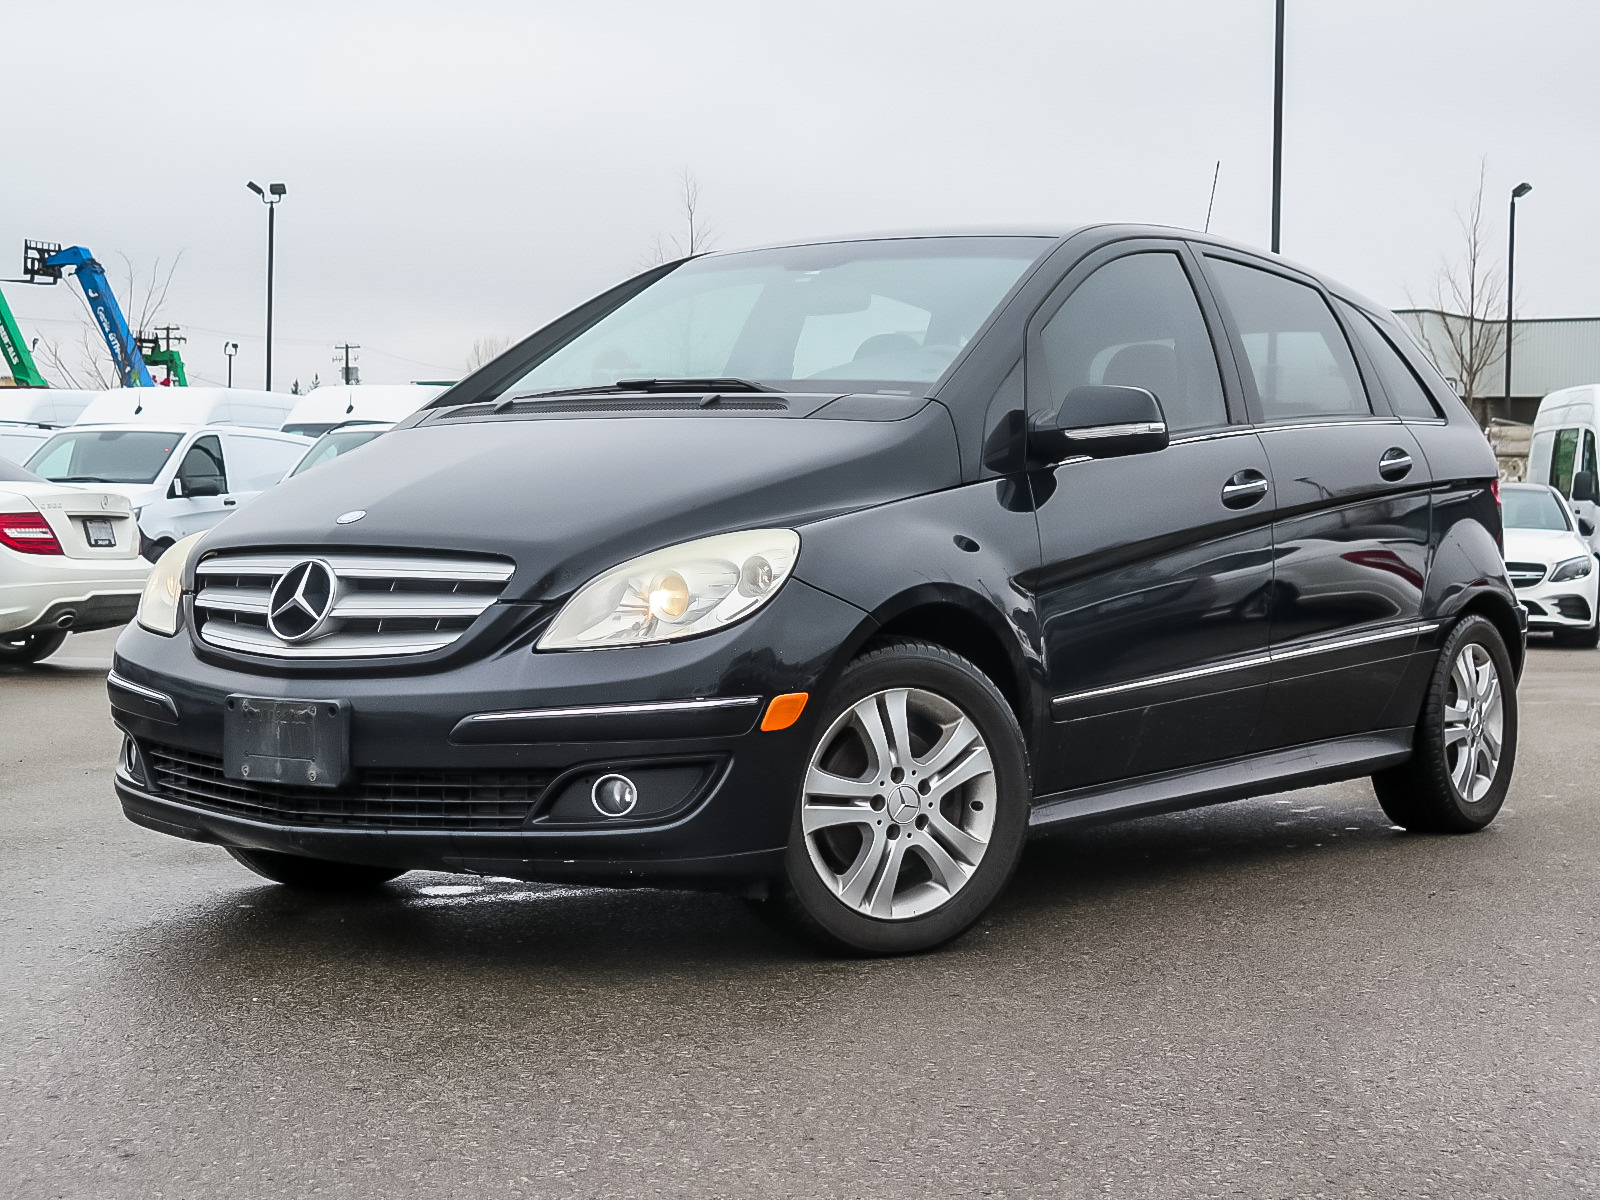 Pre-Owned 2006 Mercedes-Benz B200 Turbo